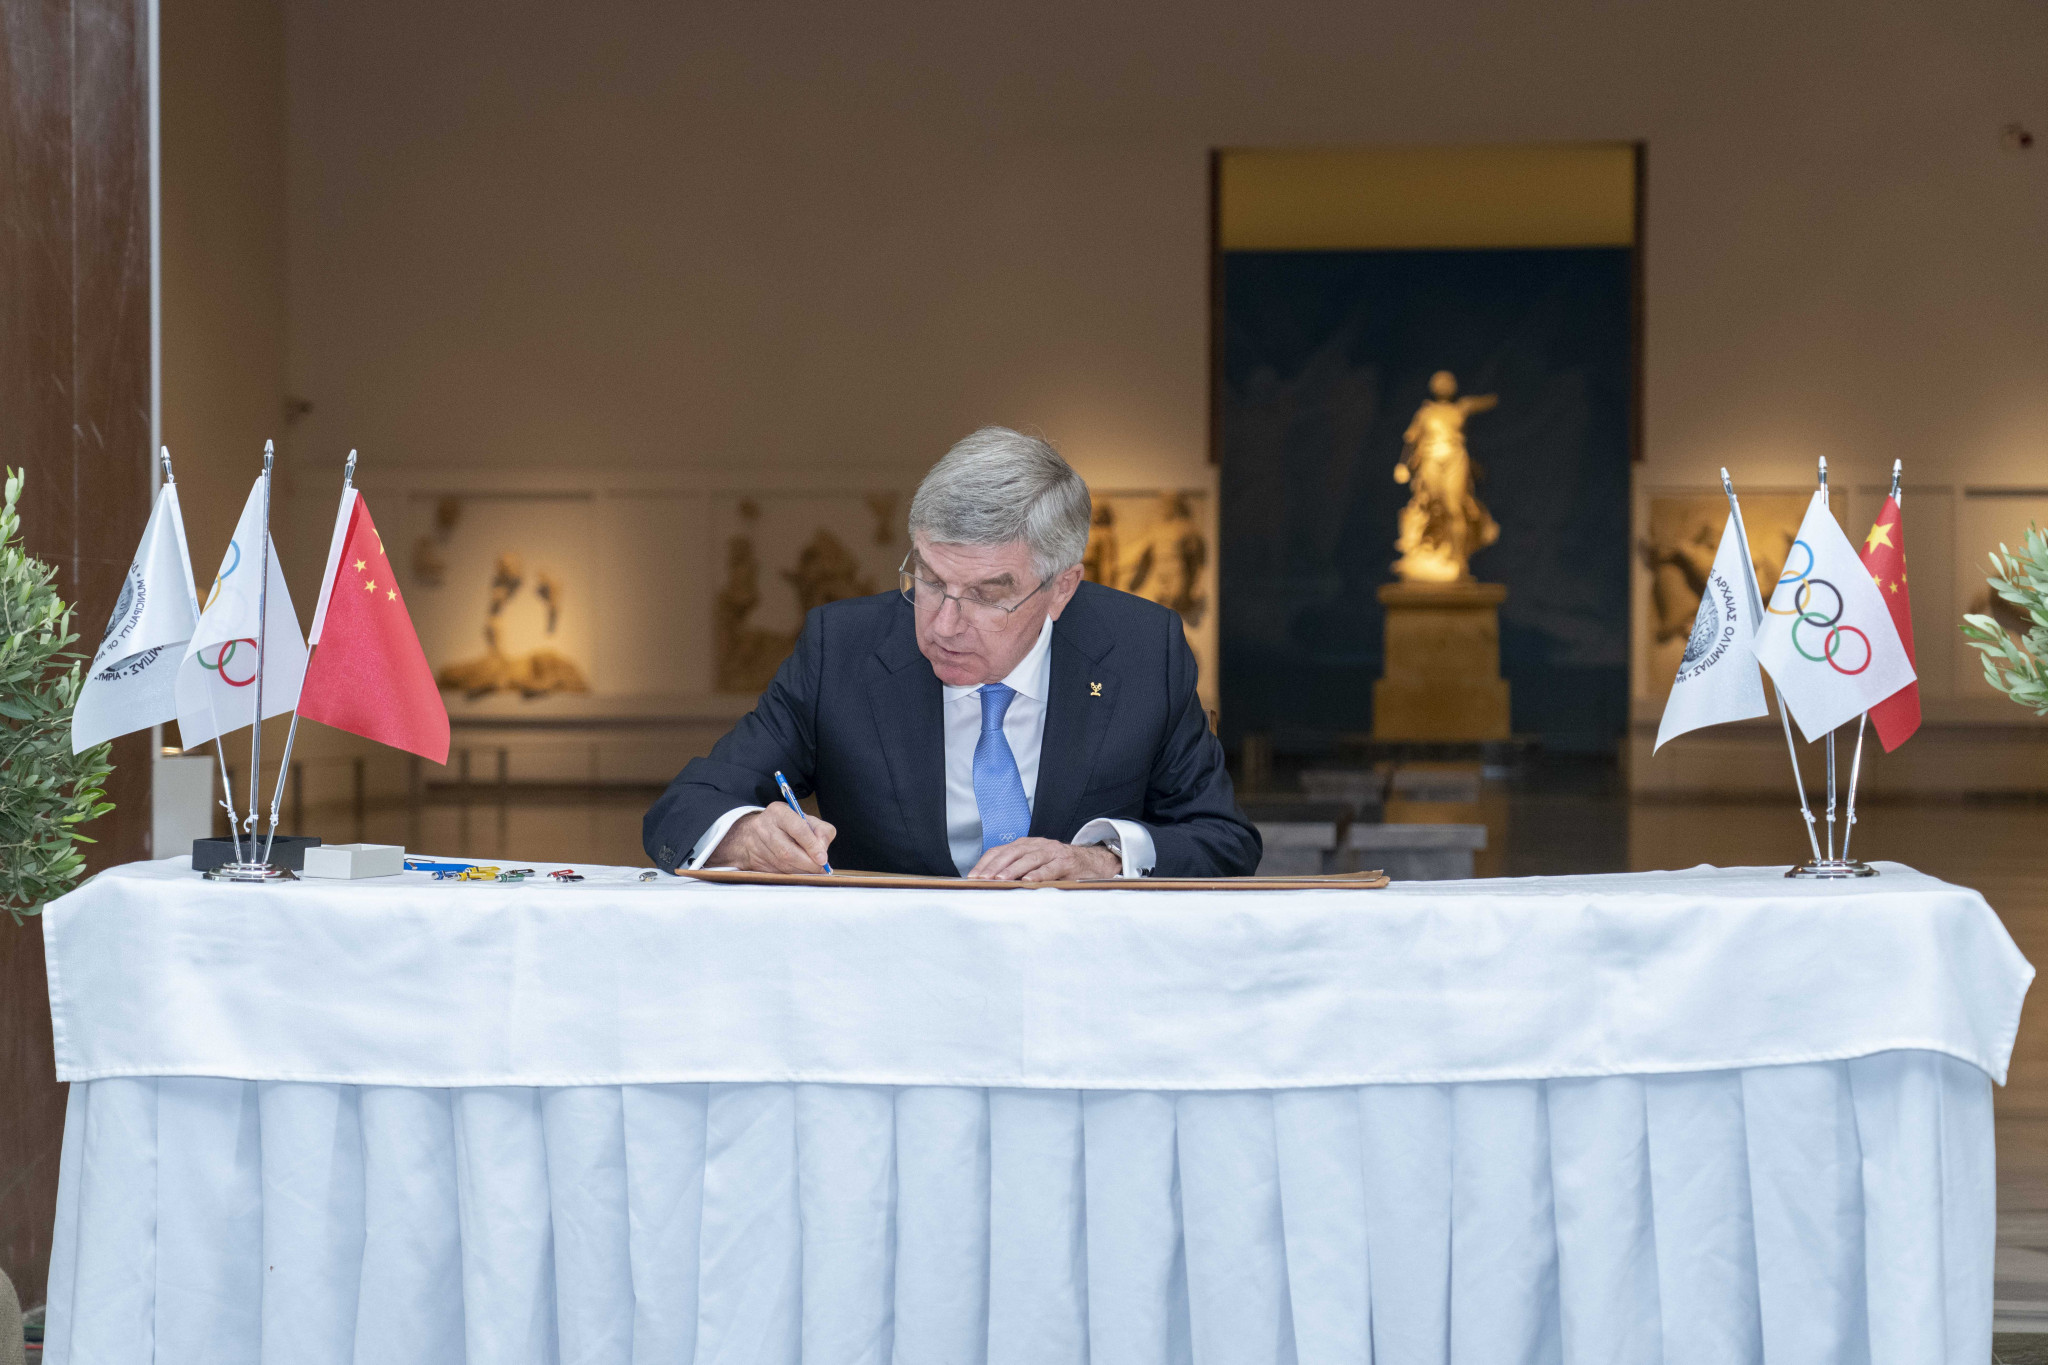 Olympic Truce for Beijing 2022 signed in Ancient Olympia